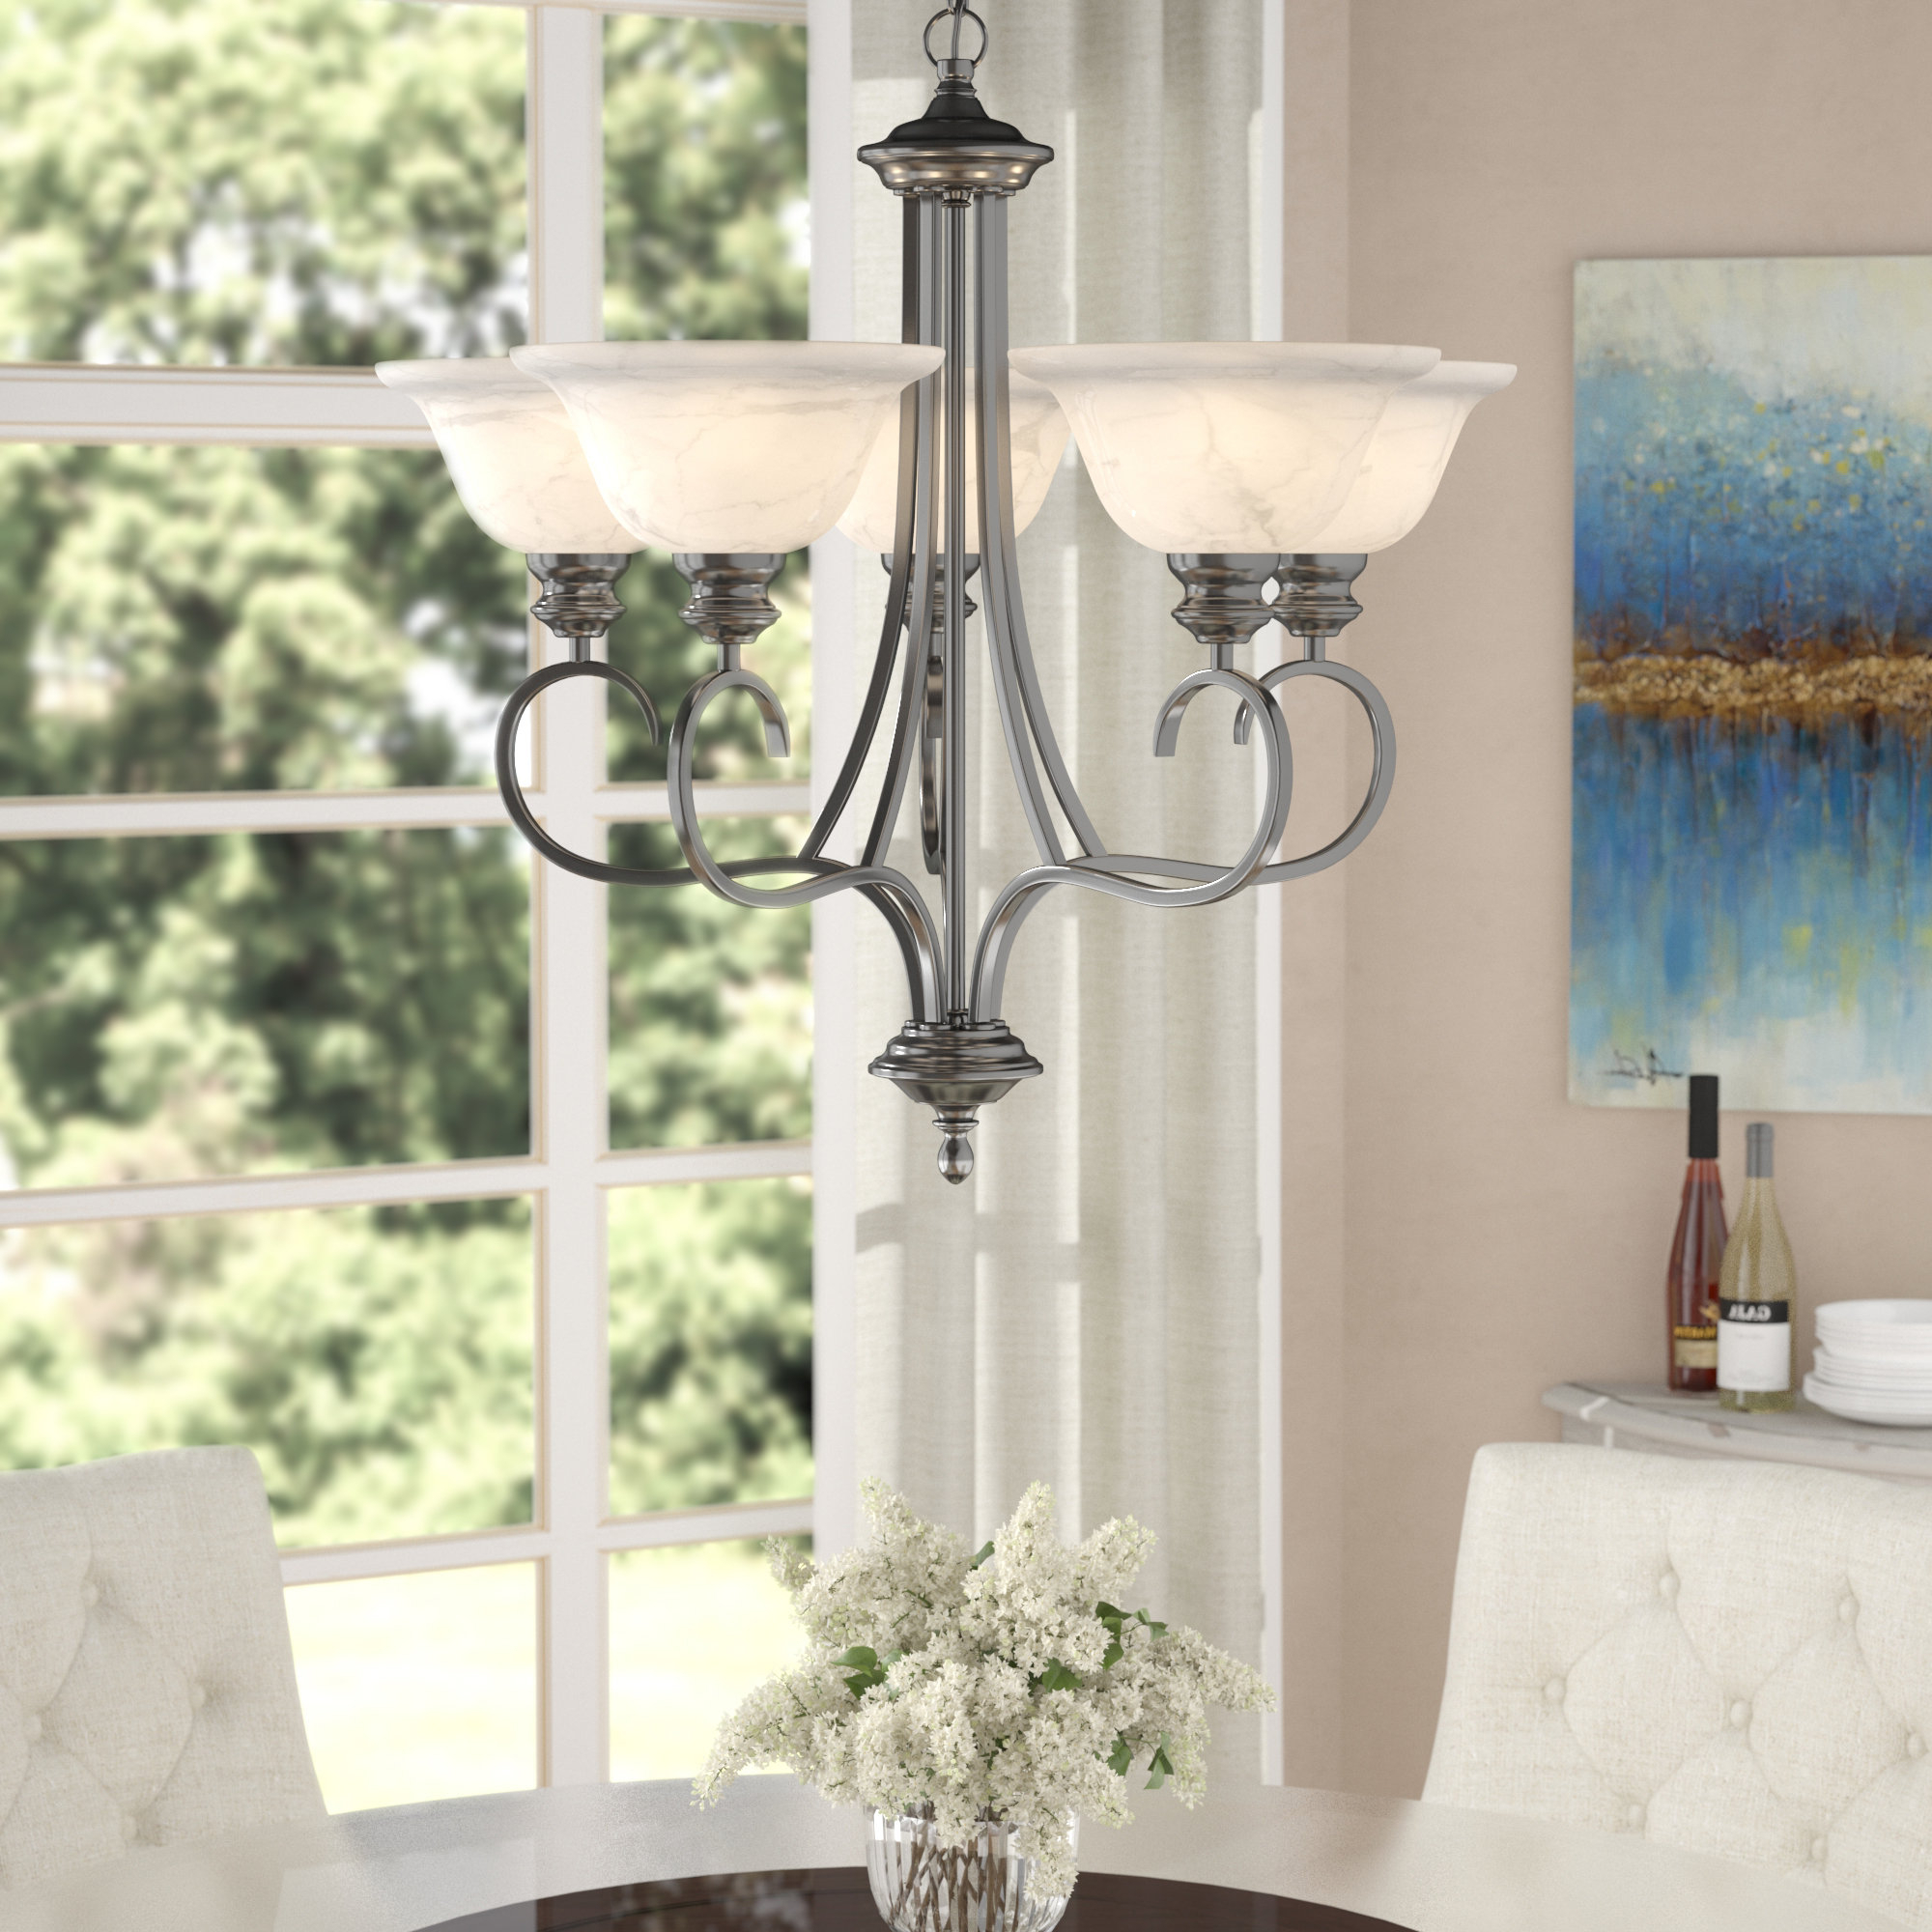 Gaines 5 Light Shaded Chandeliers Within Trendy Newson 5 Light Shaded Chandelier (Gallery 7 of 20)